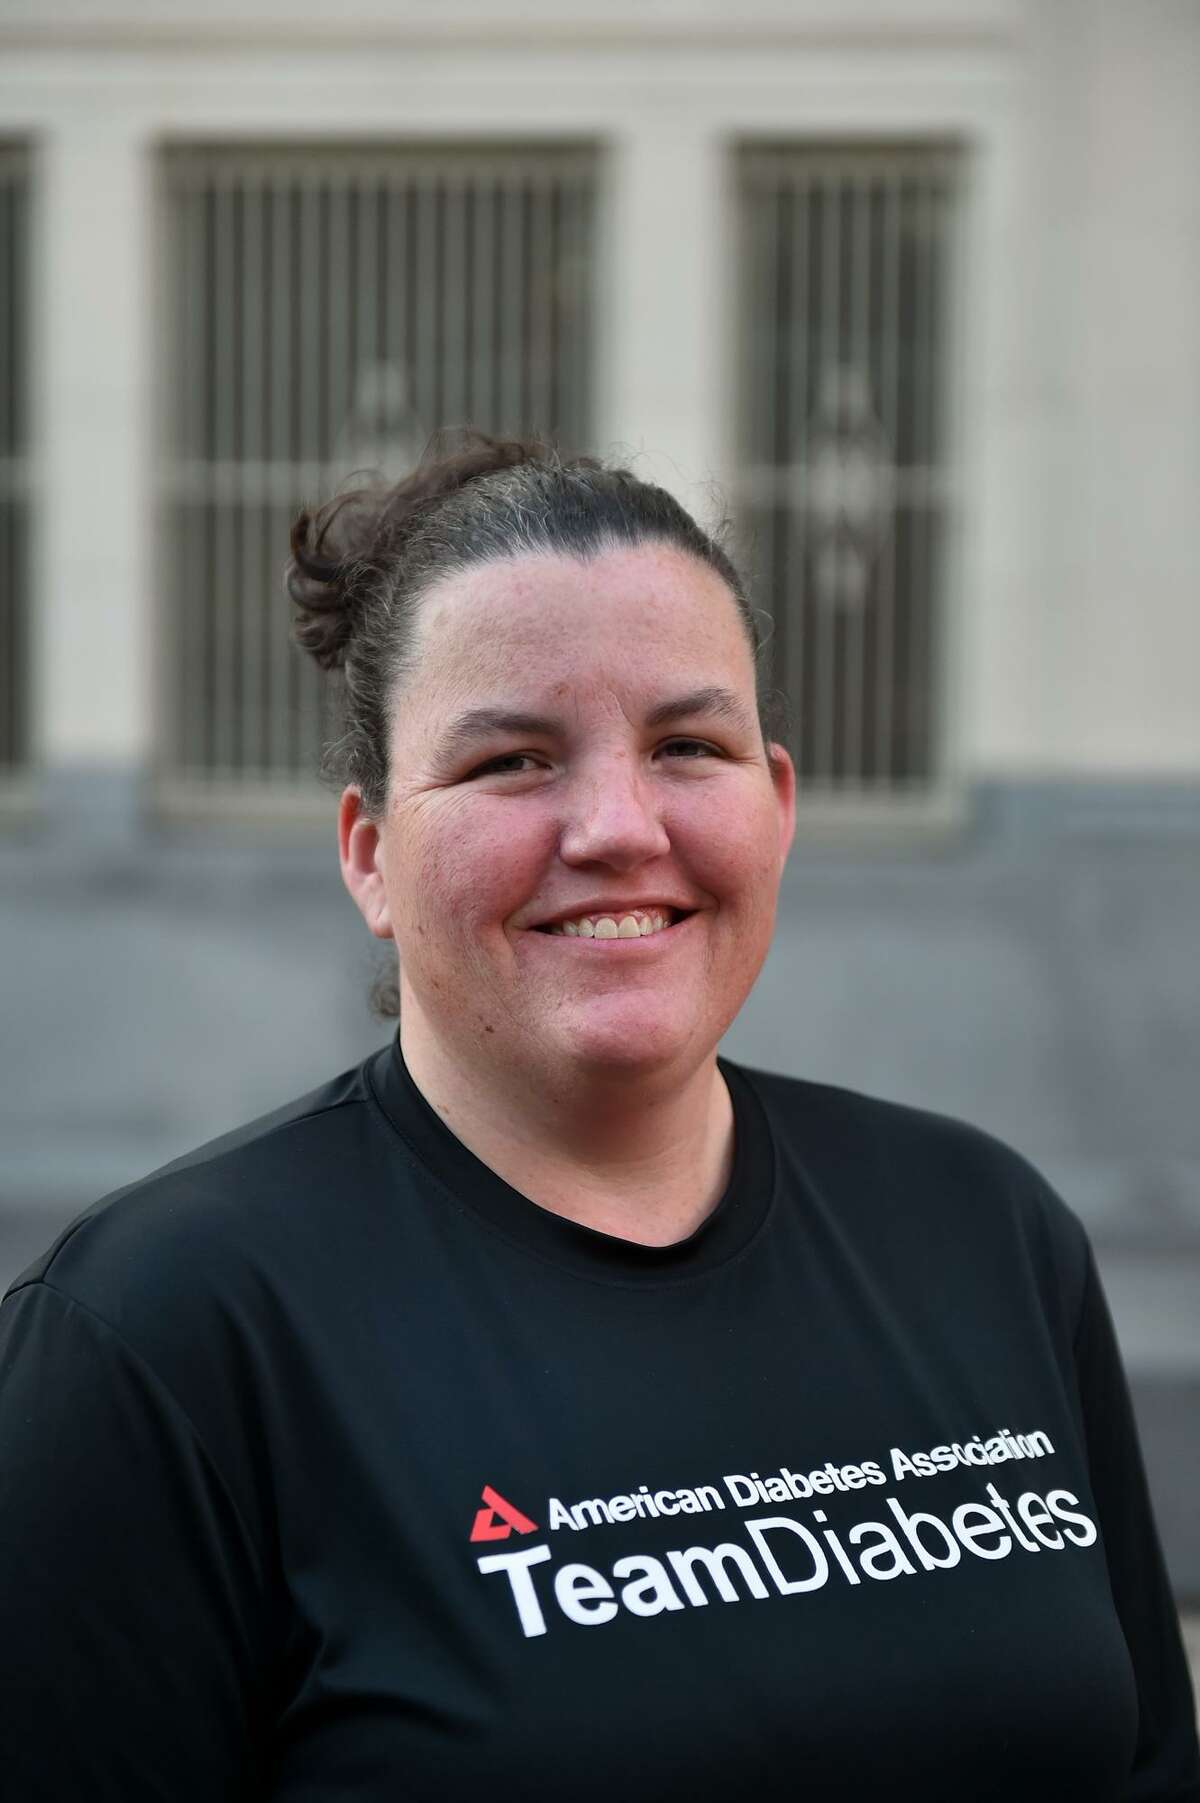 Deirdre Murphy is a volunteer with the American Diabetes Association and has Type 2 Diabetes and now is Management Type 1.